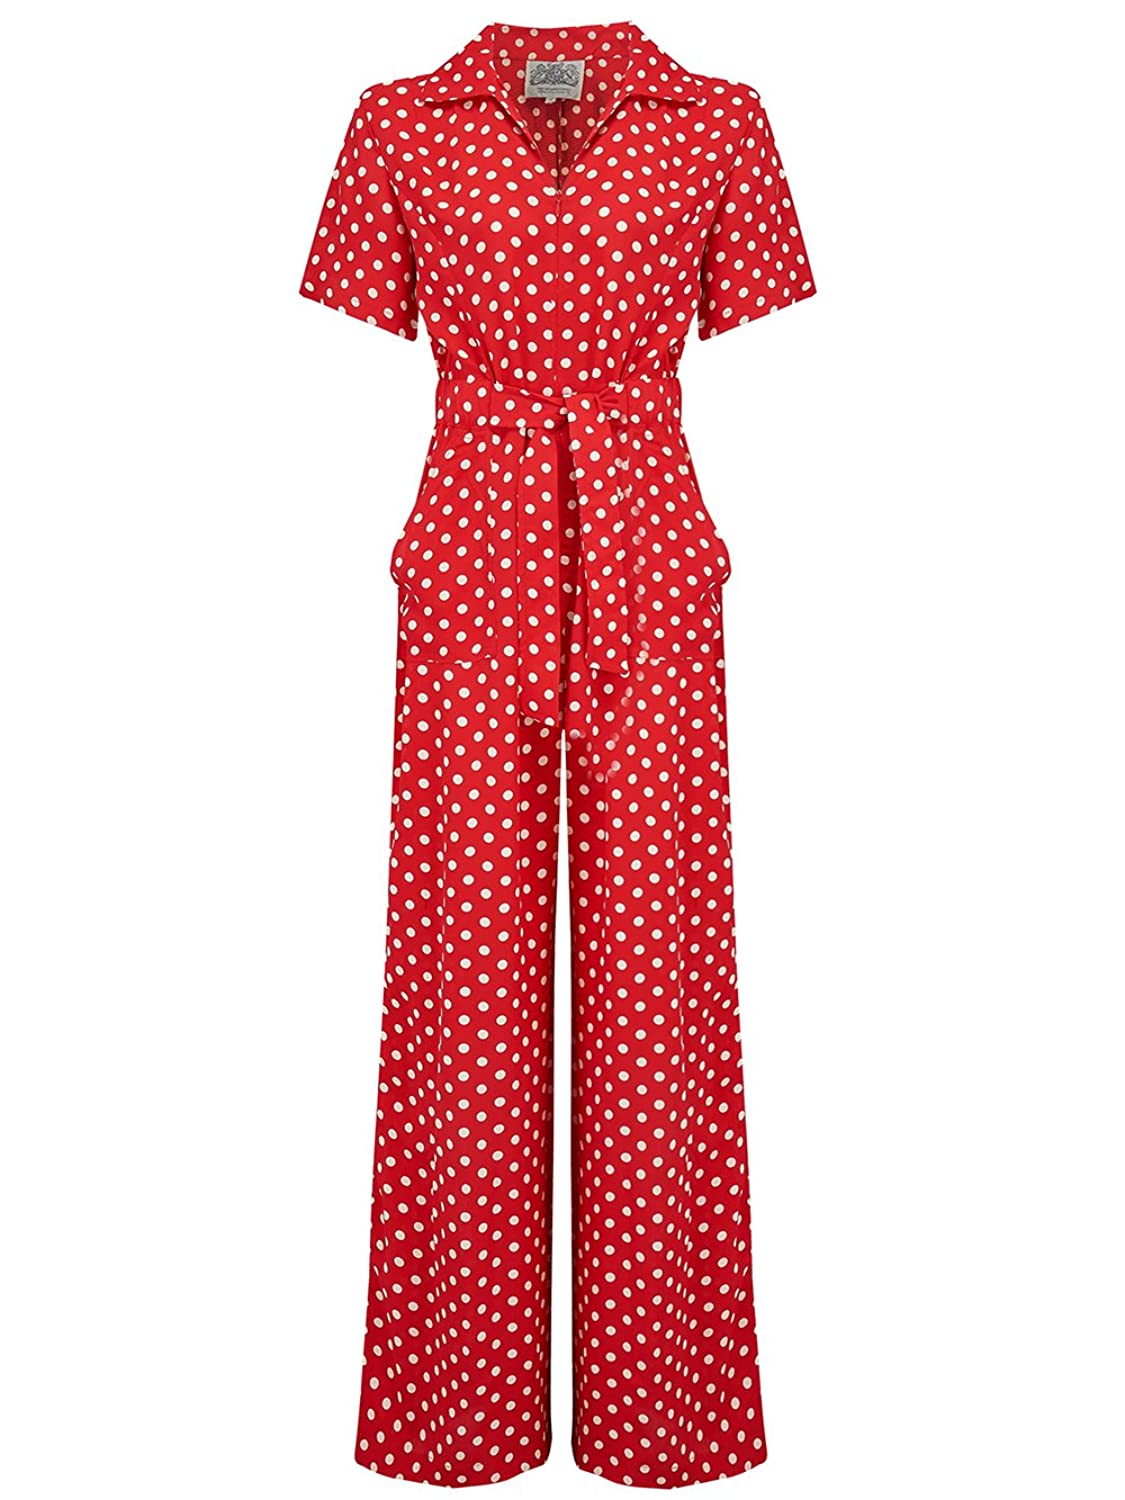 1940s Pants History- Overalls, Jeans, Sailor, Siren Suits 1940s Vintage Inspired Lauren jumpsuit in Red Spot by The Seamstress of Bloomsbury £89.00 AT vintagedancer.com